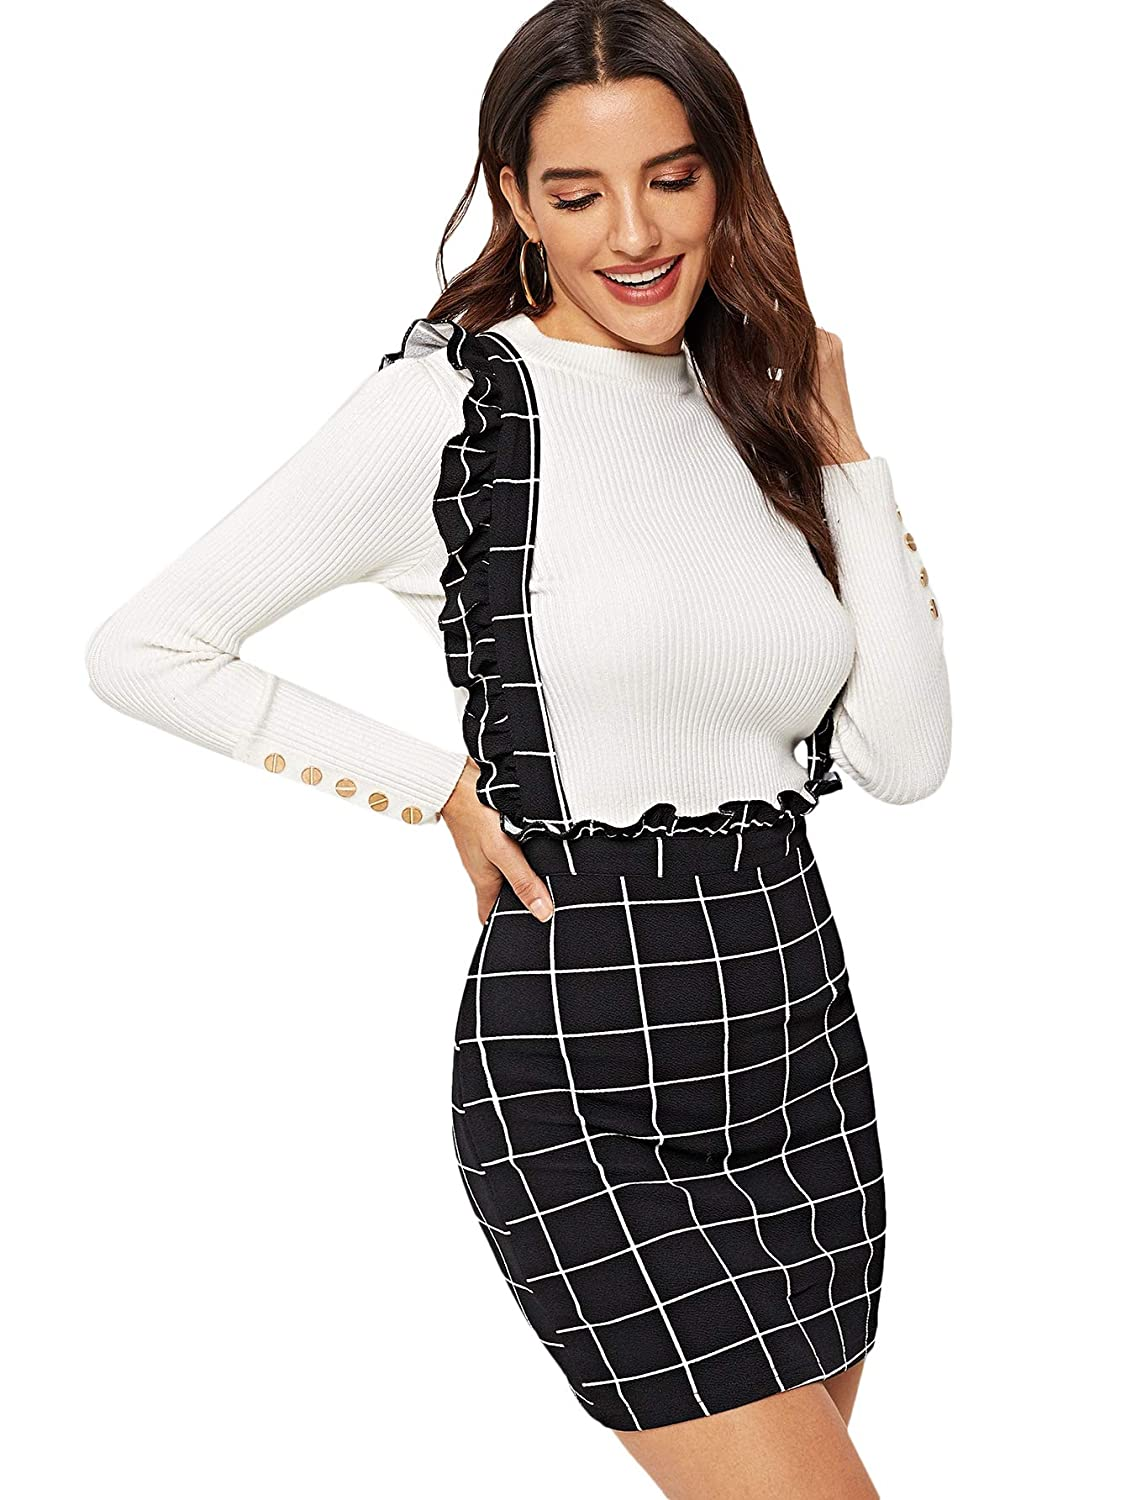 3566f670ff SheIn Women's Plaid Frill Ruffle Trim Suspender Skirt Pinafore Overall Dress  at Amazon Women's Clothing store: